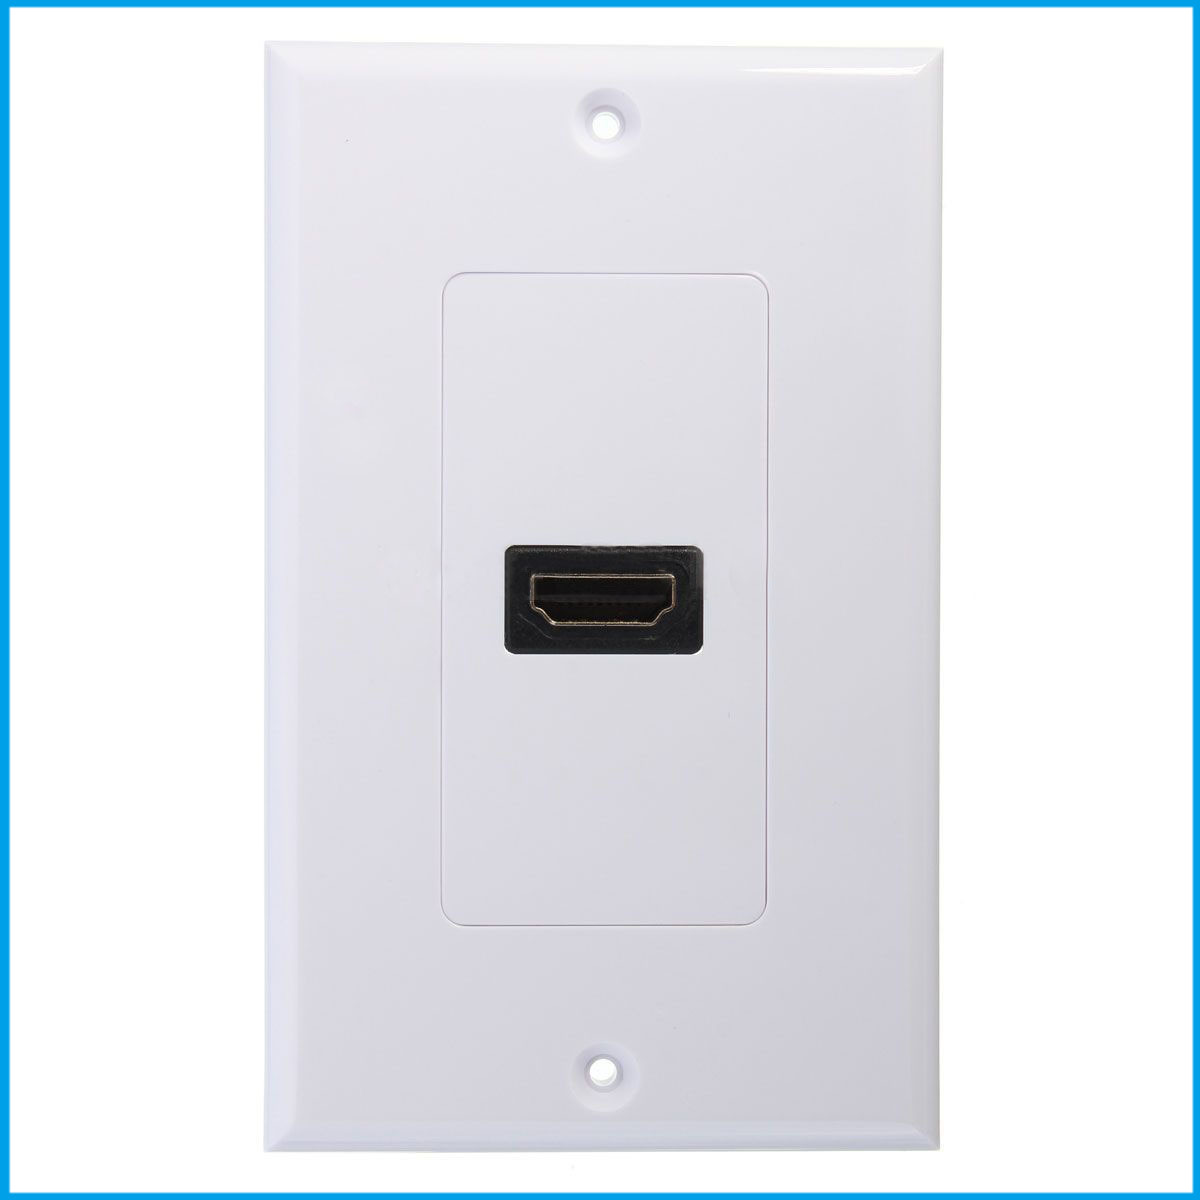 CNIM Hot New 1-Port HDMI Wall Face Plate Panel Cover Coupler Outlet Extender 3D 1080P White